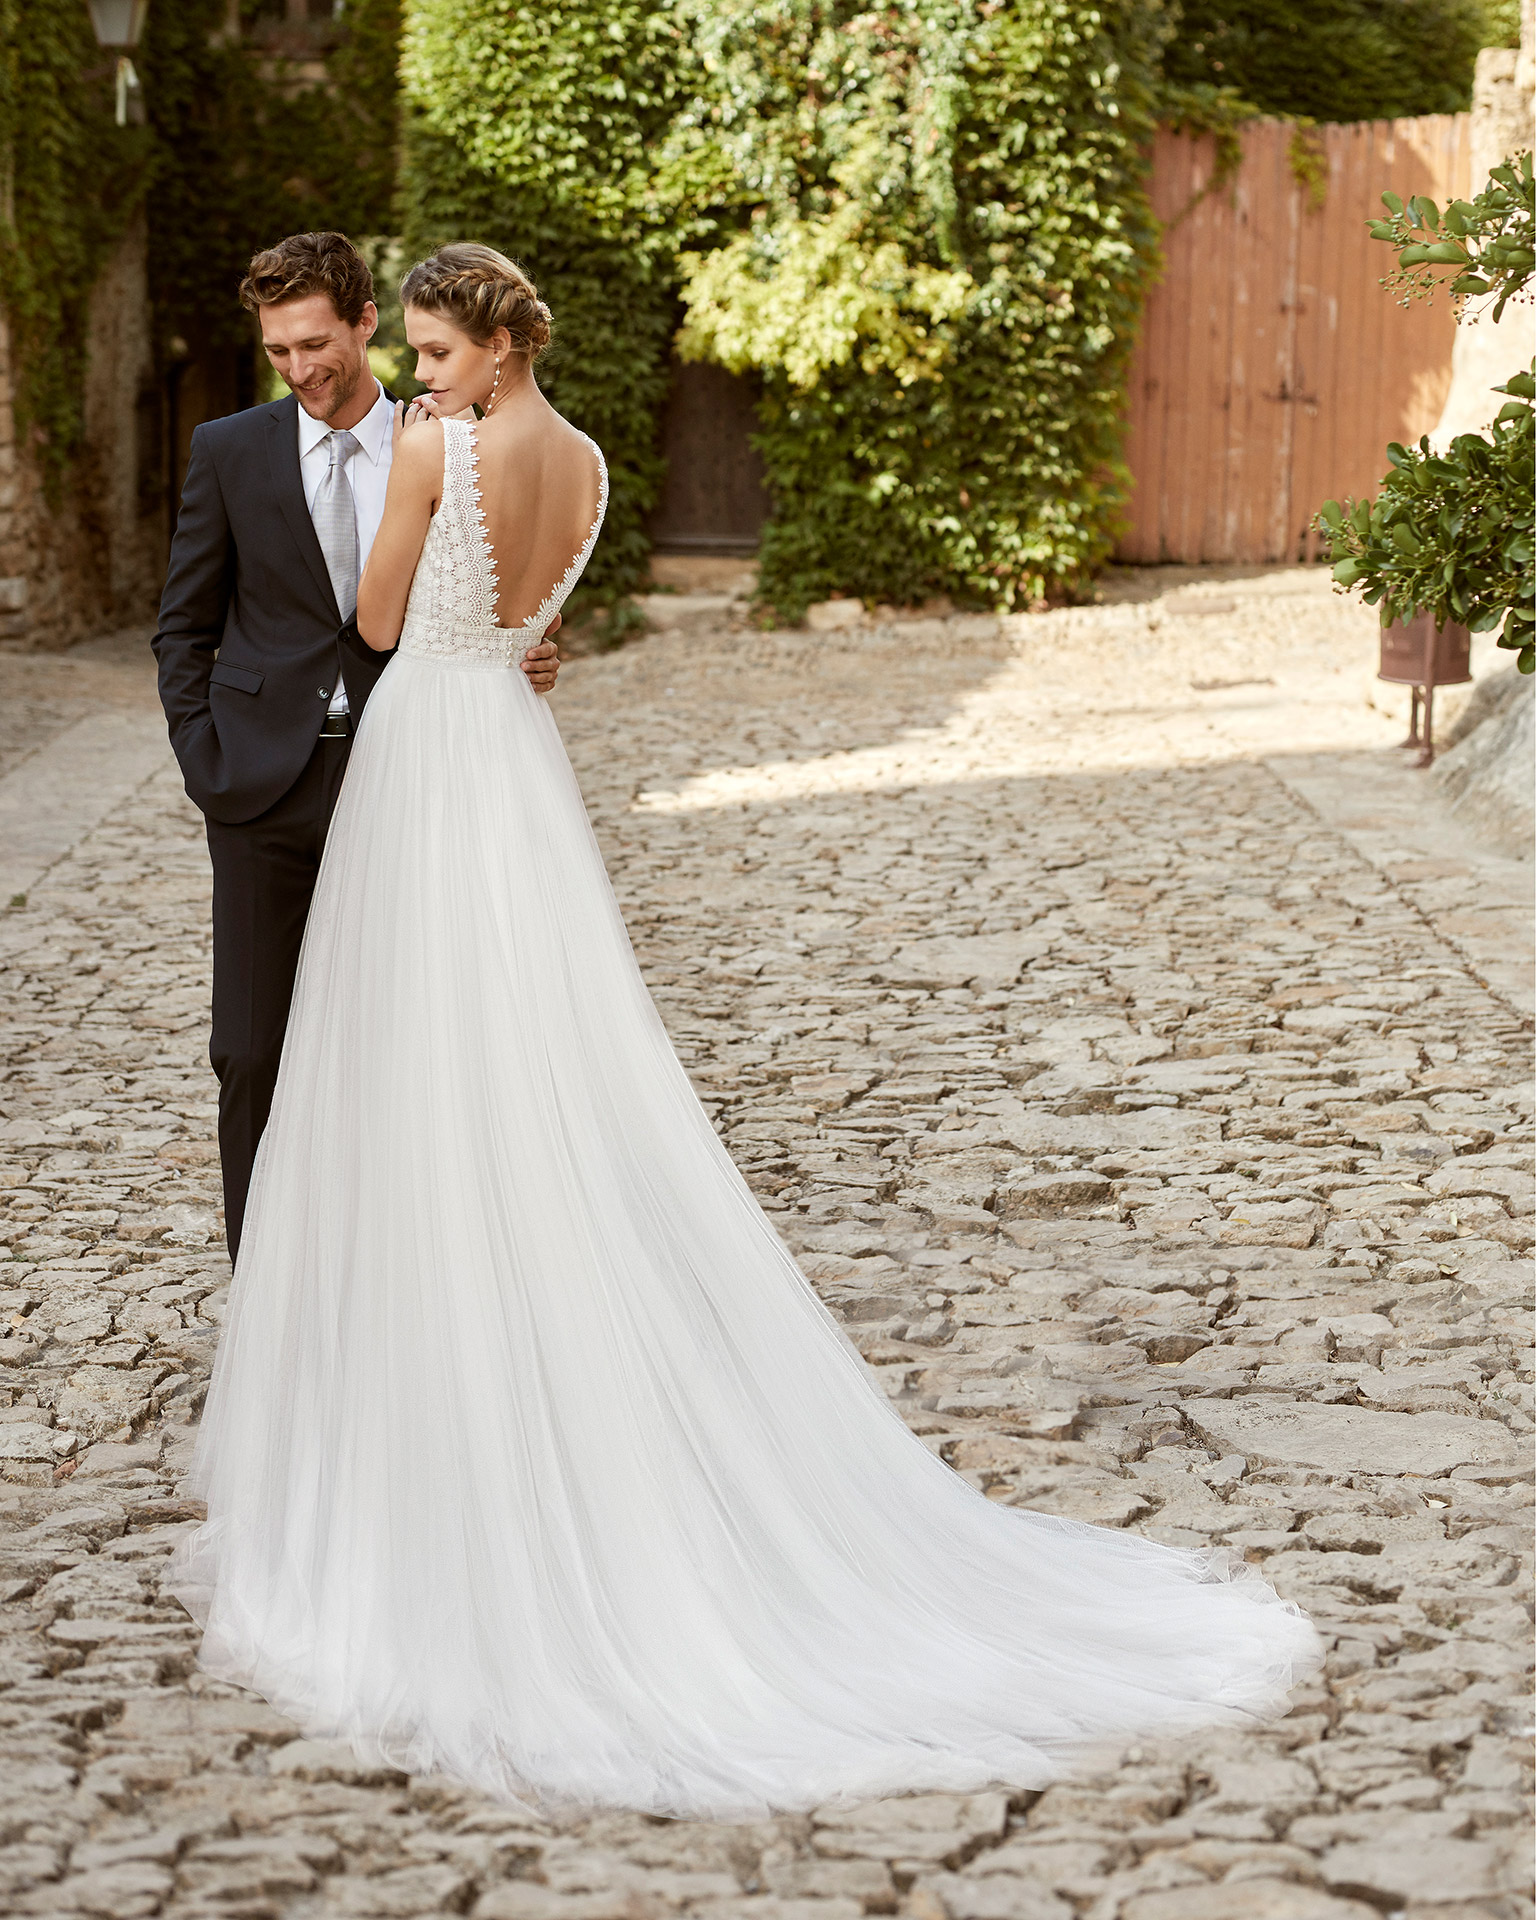 Romantic ballgown-style wedding dress with a lace bodice; a V-neckline, open back and lightweight skirt with soft tulle and lace edging applied to the skirt. Alma Novia model in tulle and lace. 2022 ALMANOVIA Collection.